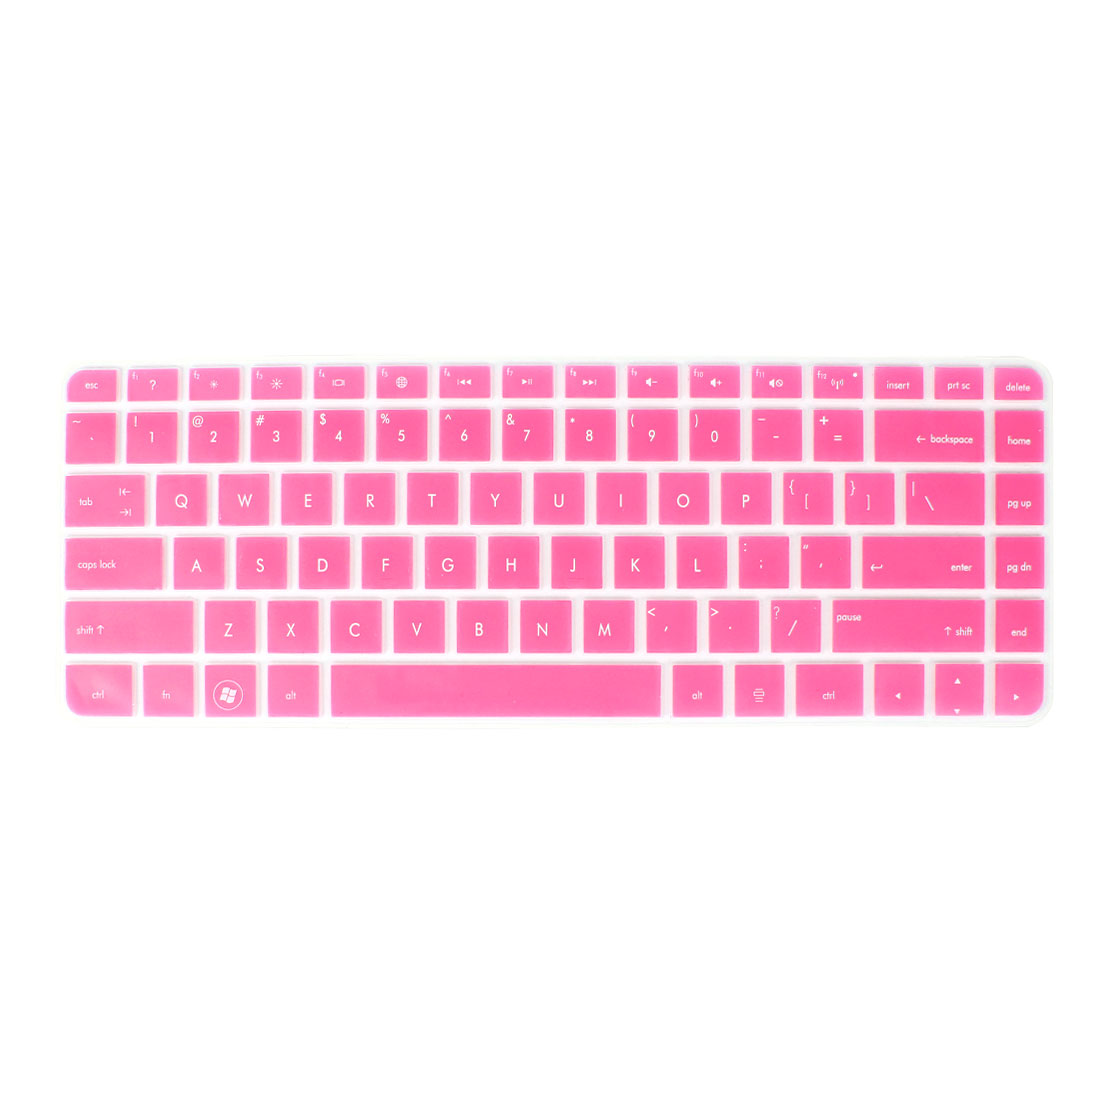 Laptop Keyboard Protector Film Pink Clear for HP G4/431/430/DV4/4230S